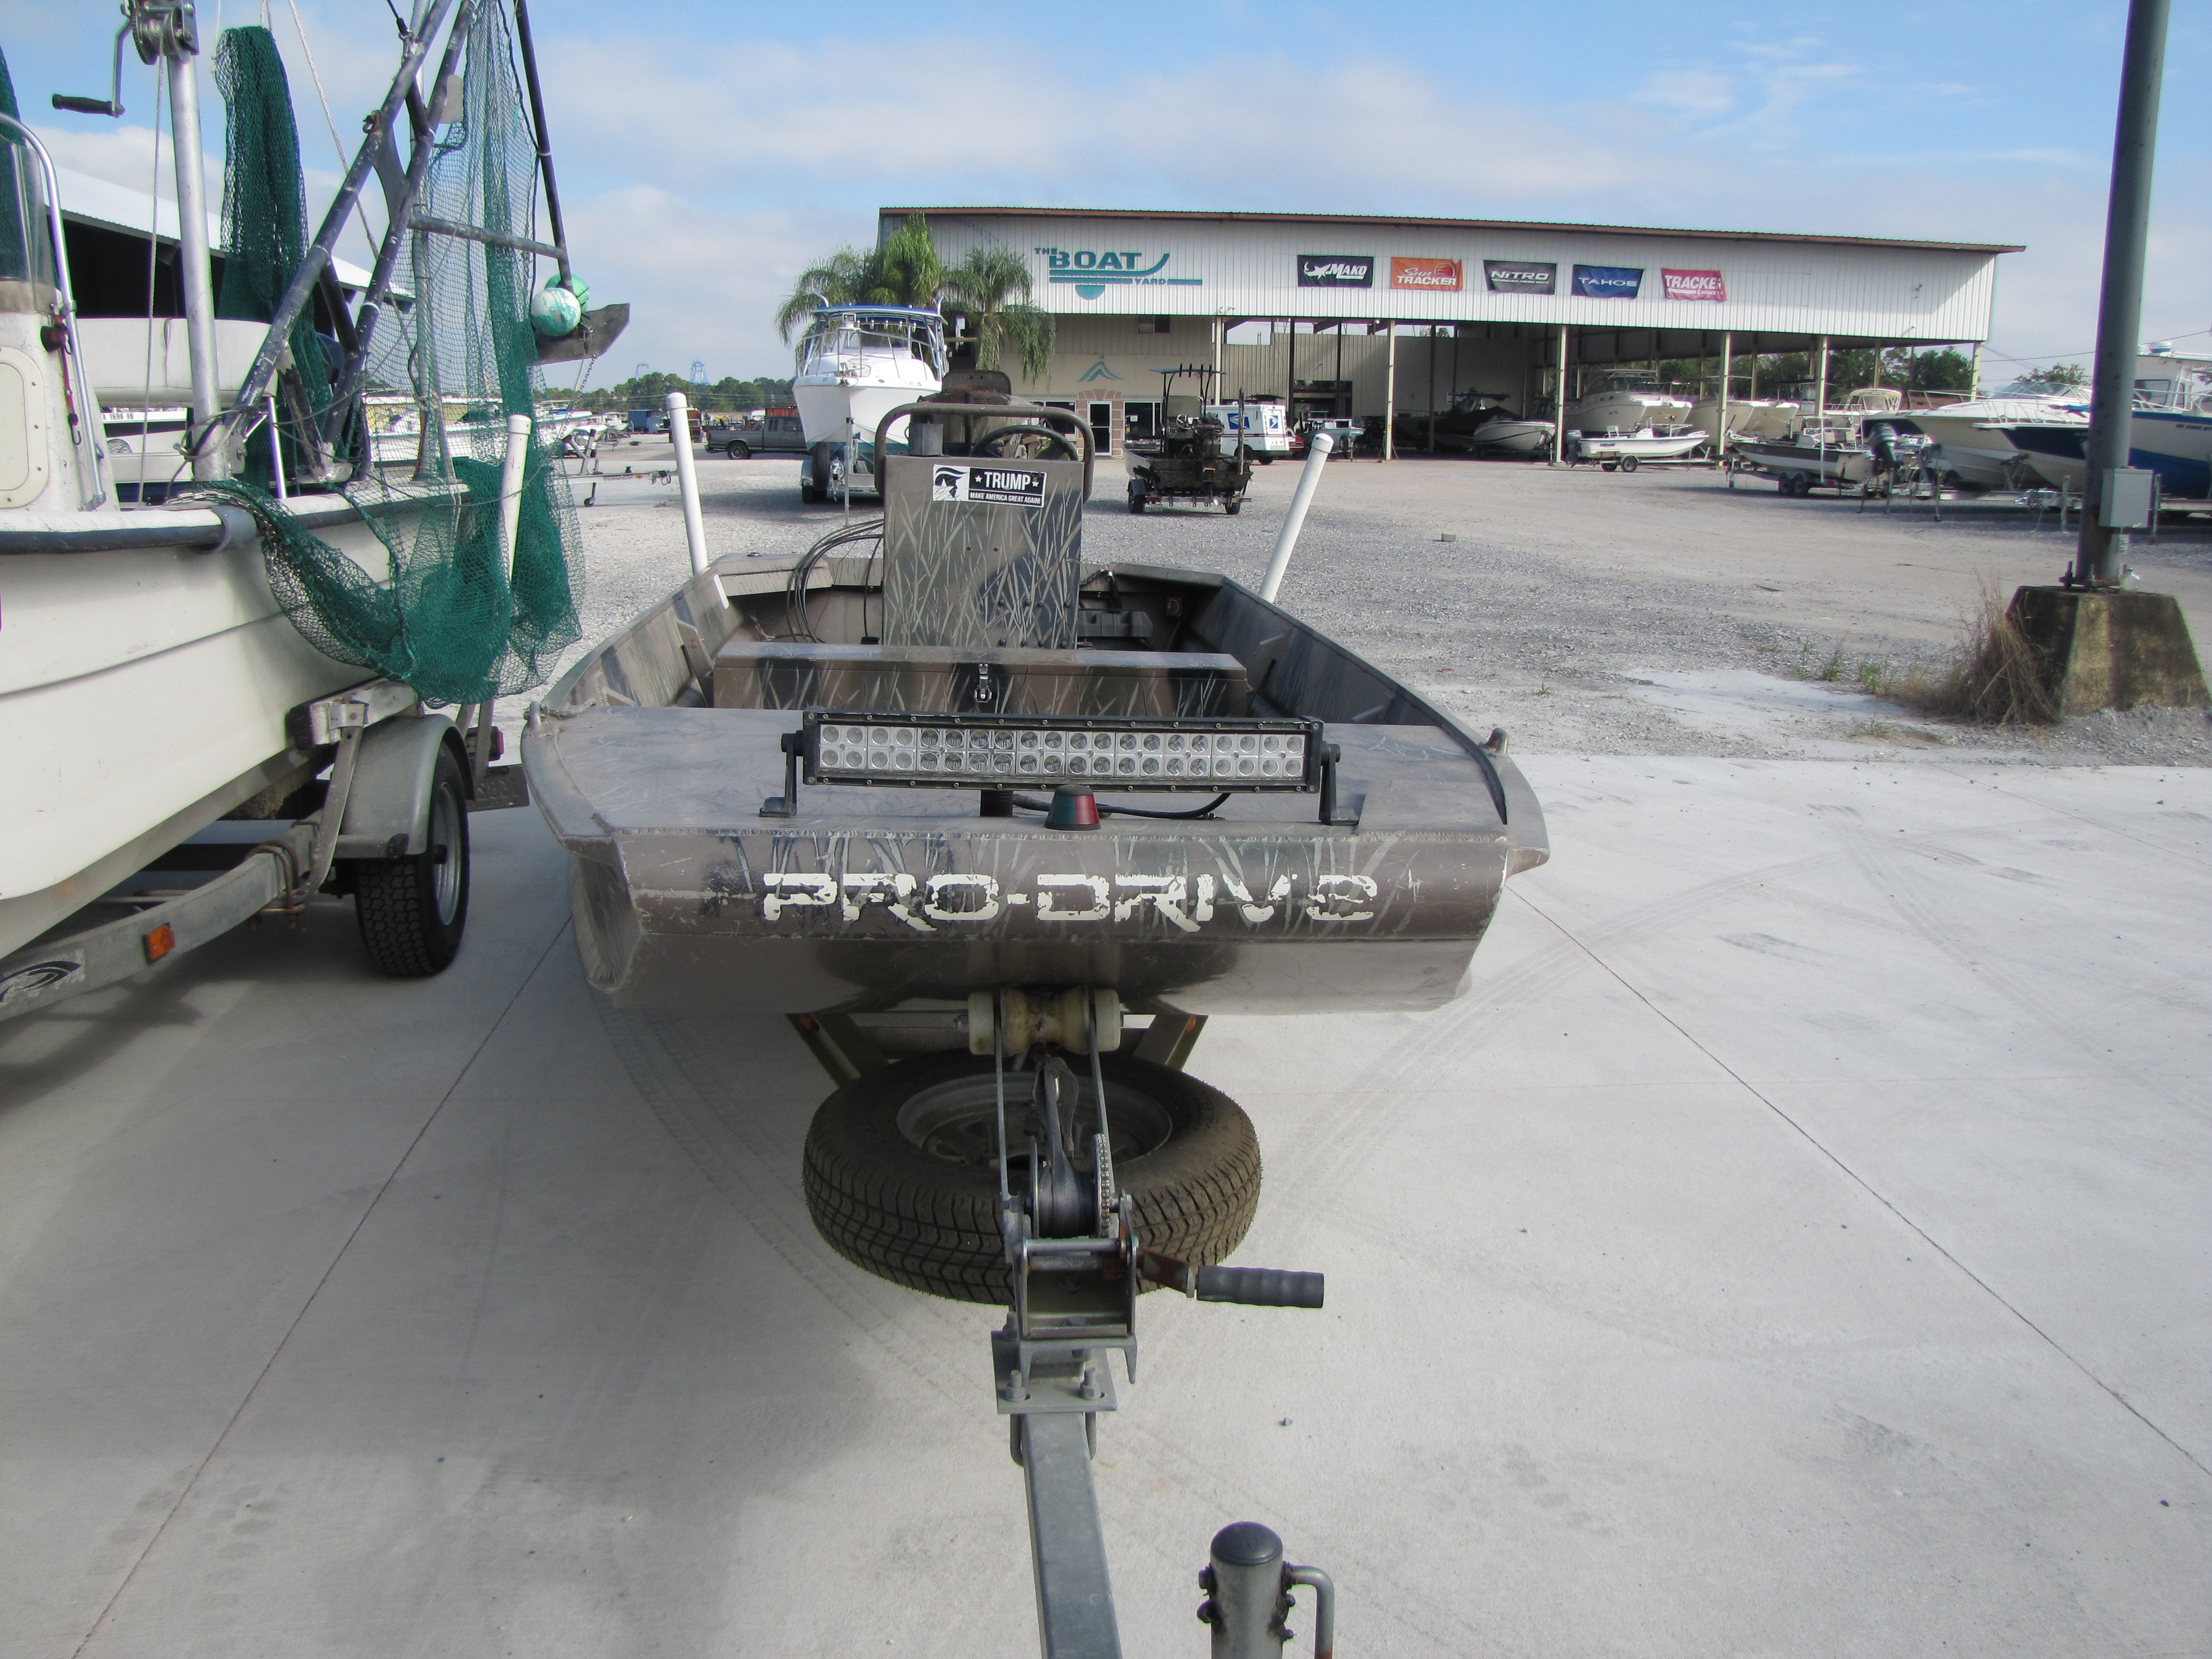 2013 Pro-Drive boat for sale, model of the boat is 1754 & Image # 4 of 13